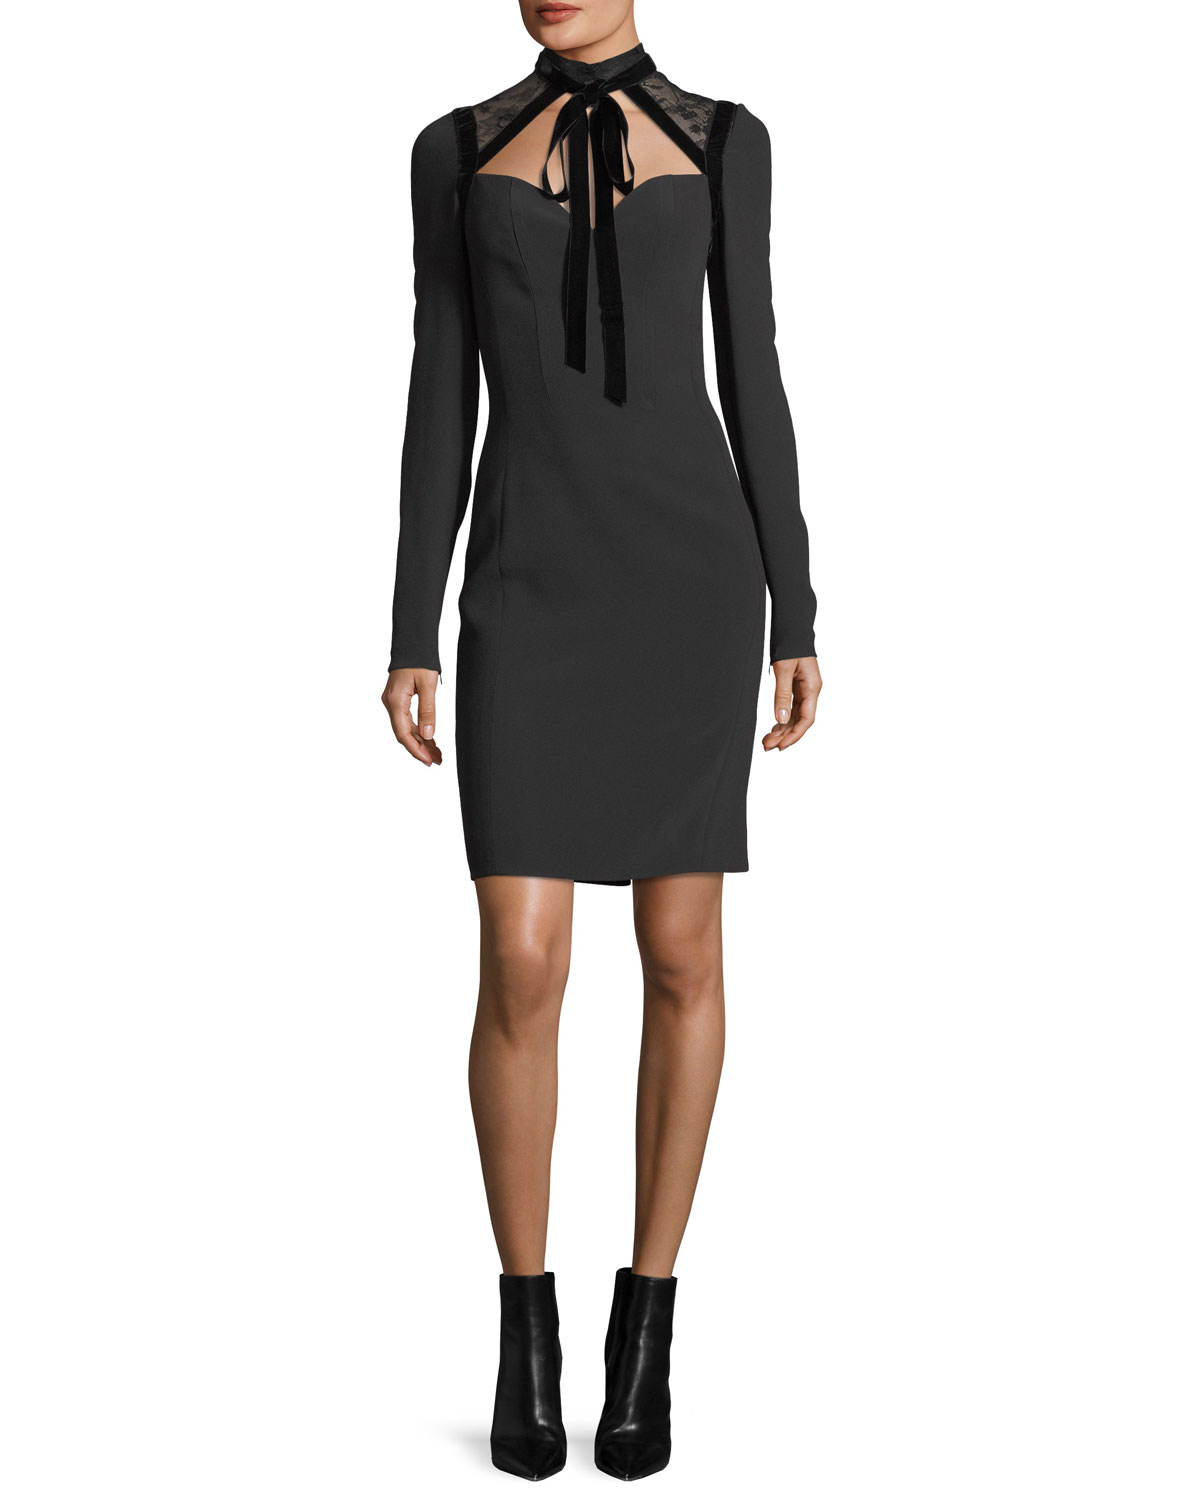 Cady & Velvet Necktie Cocktail Dress